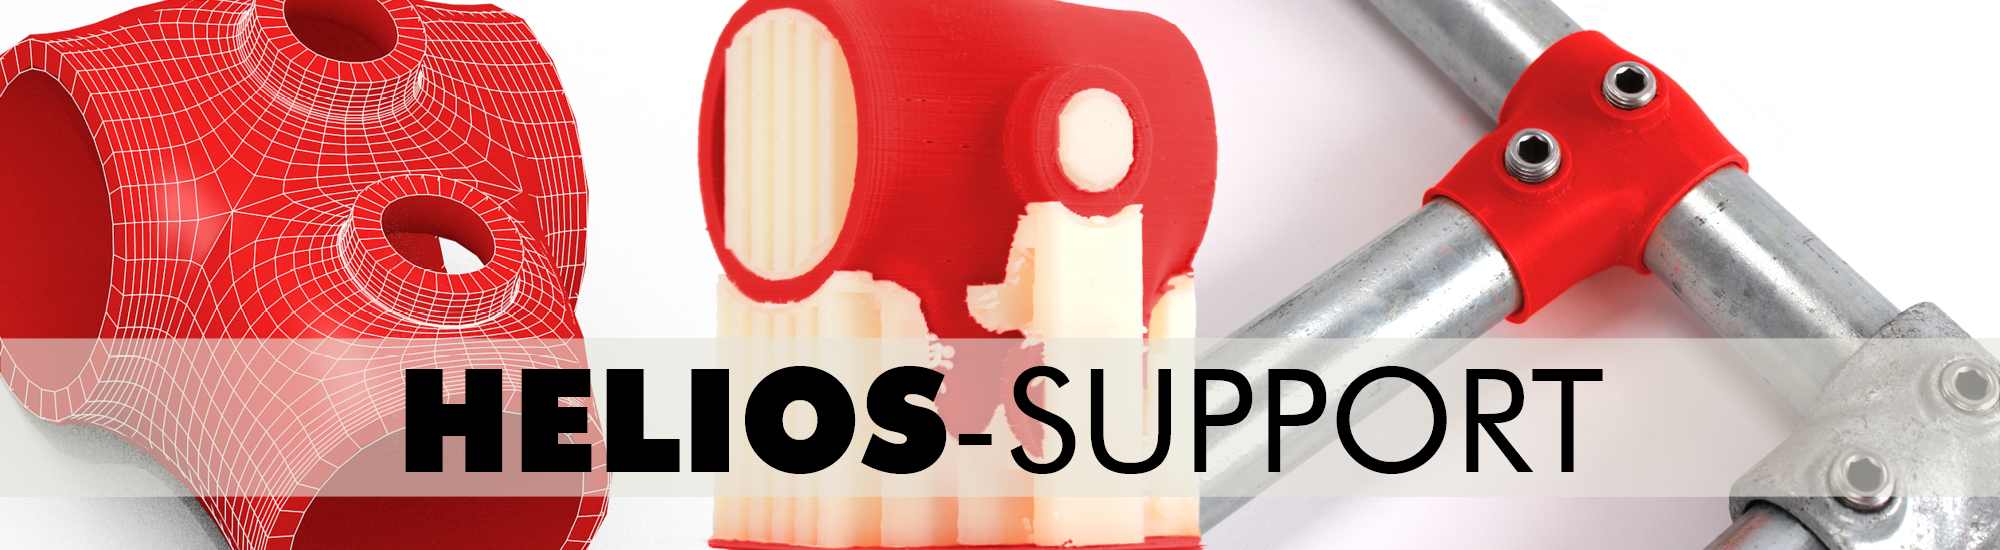 Helios Support™ - PVA